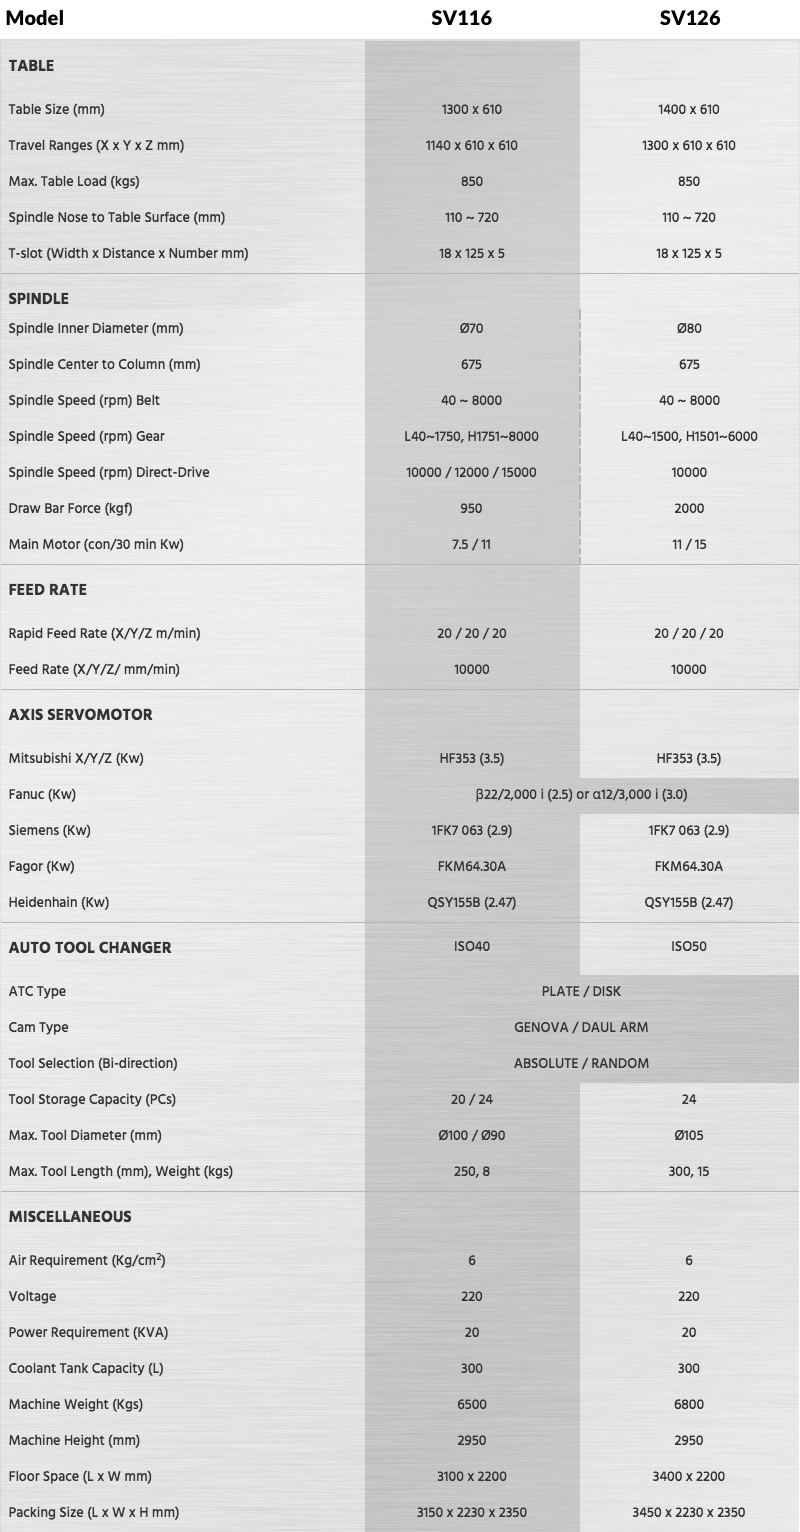 Box Guide Way Vertical CNC Machining Centre - Pinnacle SV116 & SV126 Technical Specifications Chart